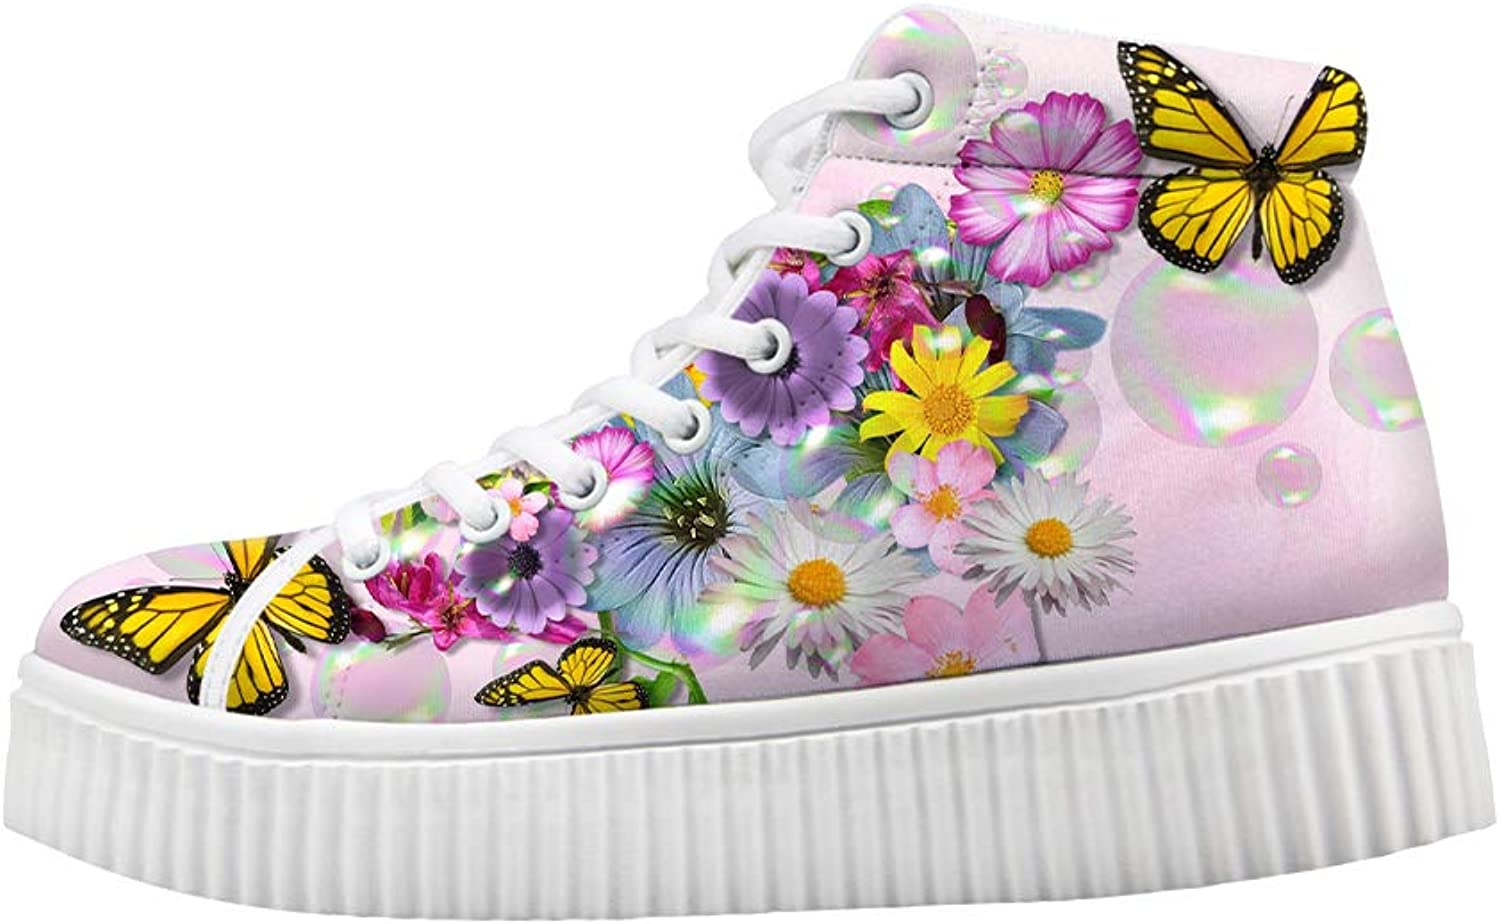 Owaheson Platform Lace up Sneaker Casual Chunky Walking shoes Women Illinois Monarch Butterfly Bright Flowers